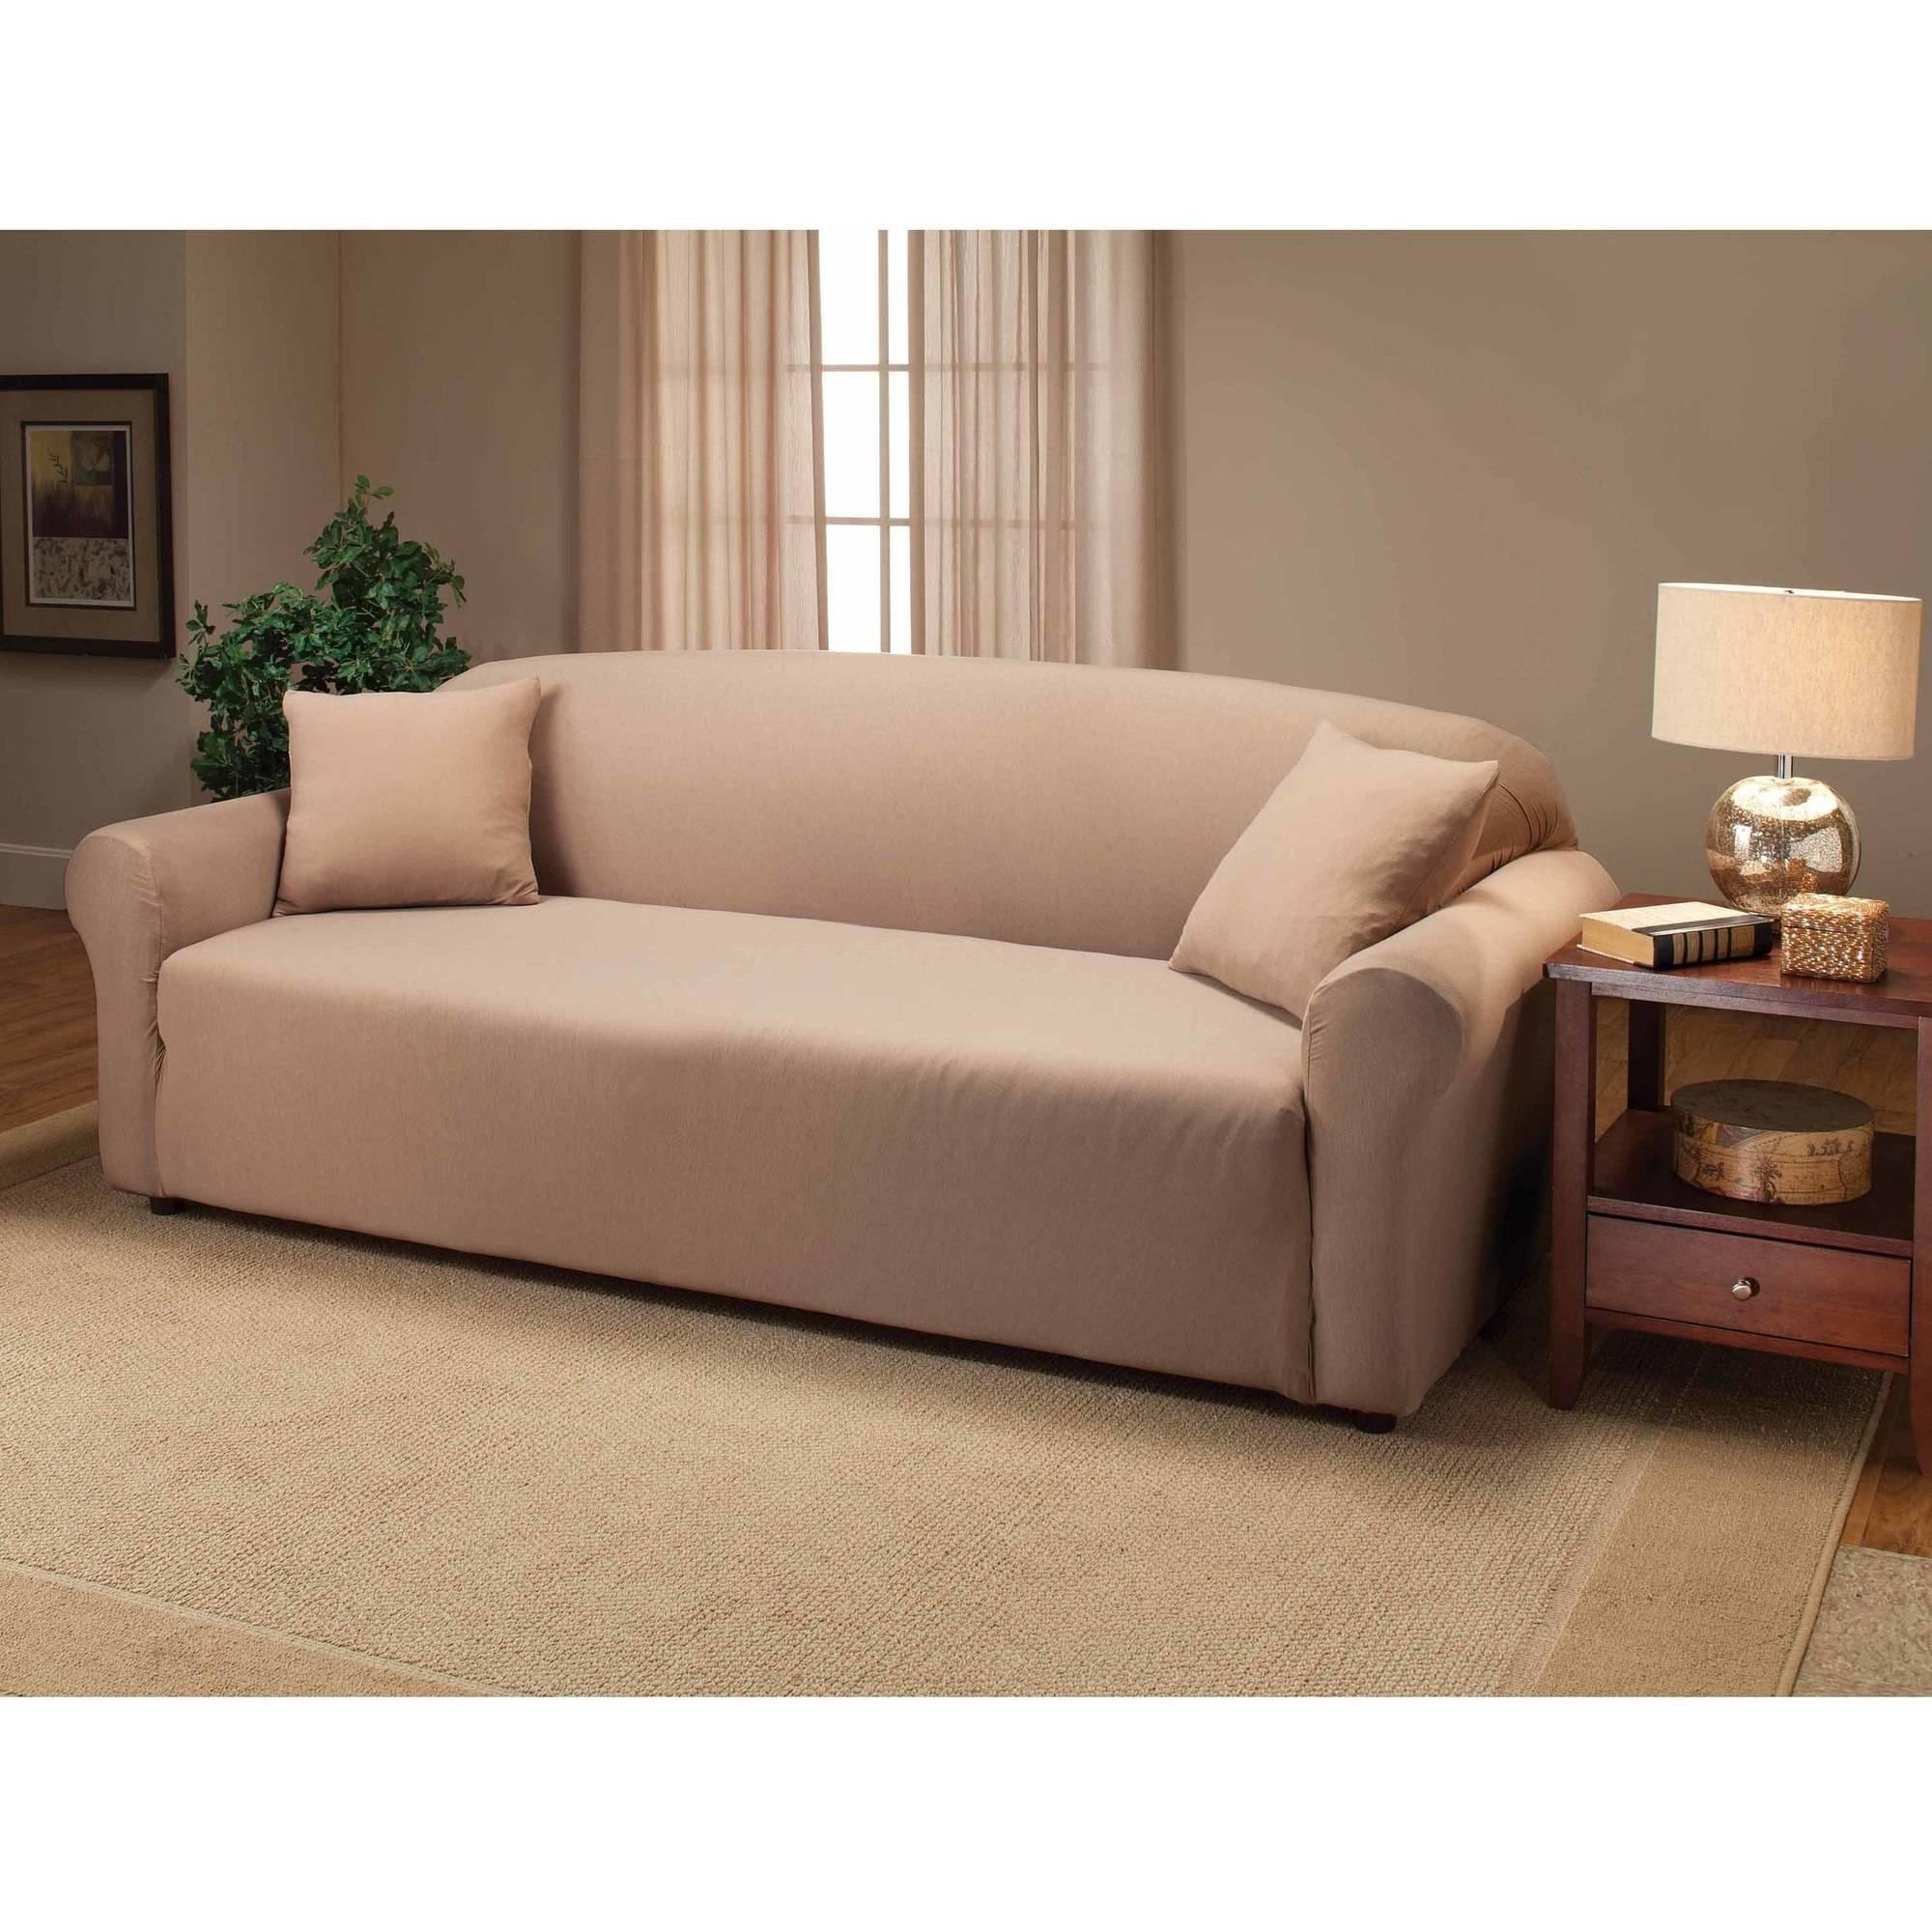 Jersey Stretch Sofa Slipcover – Walmart Throughout Turquoise Sofa Covers (Image 9 of 20)